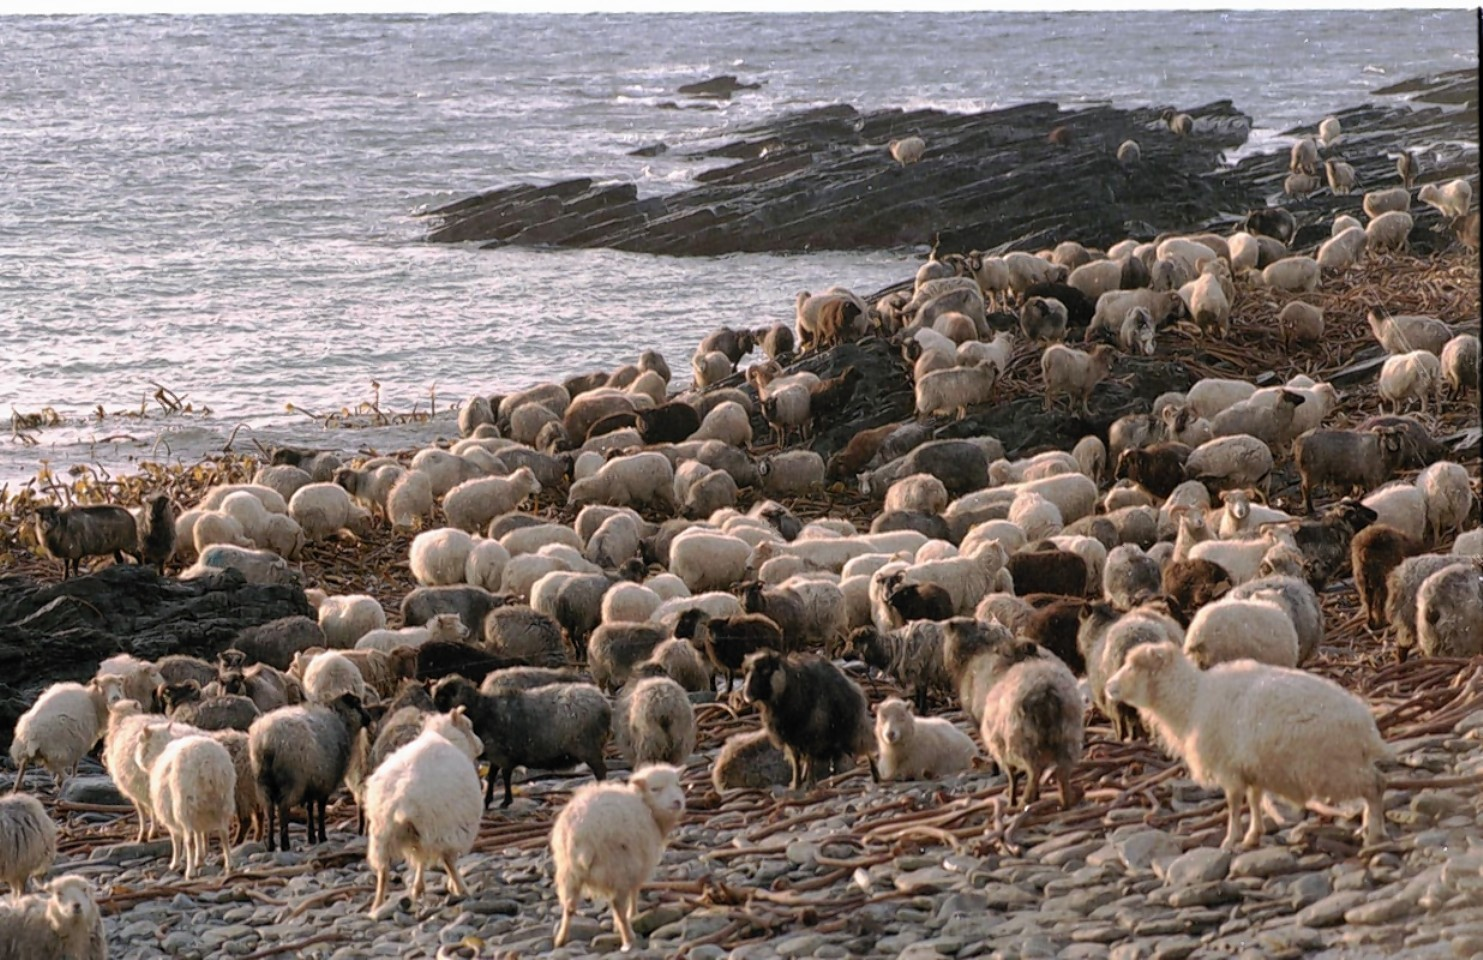 The rare North Ronaldsay sheep